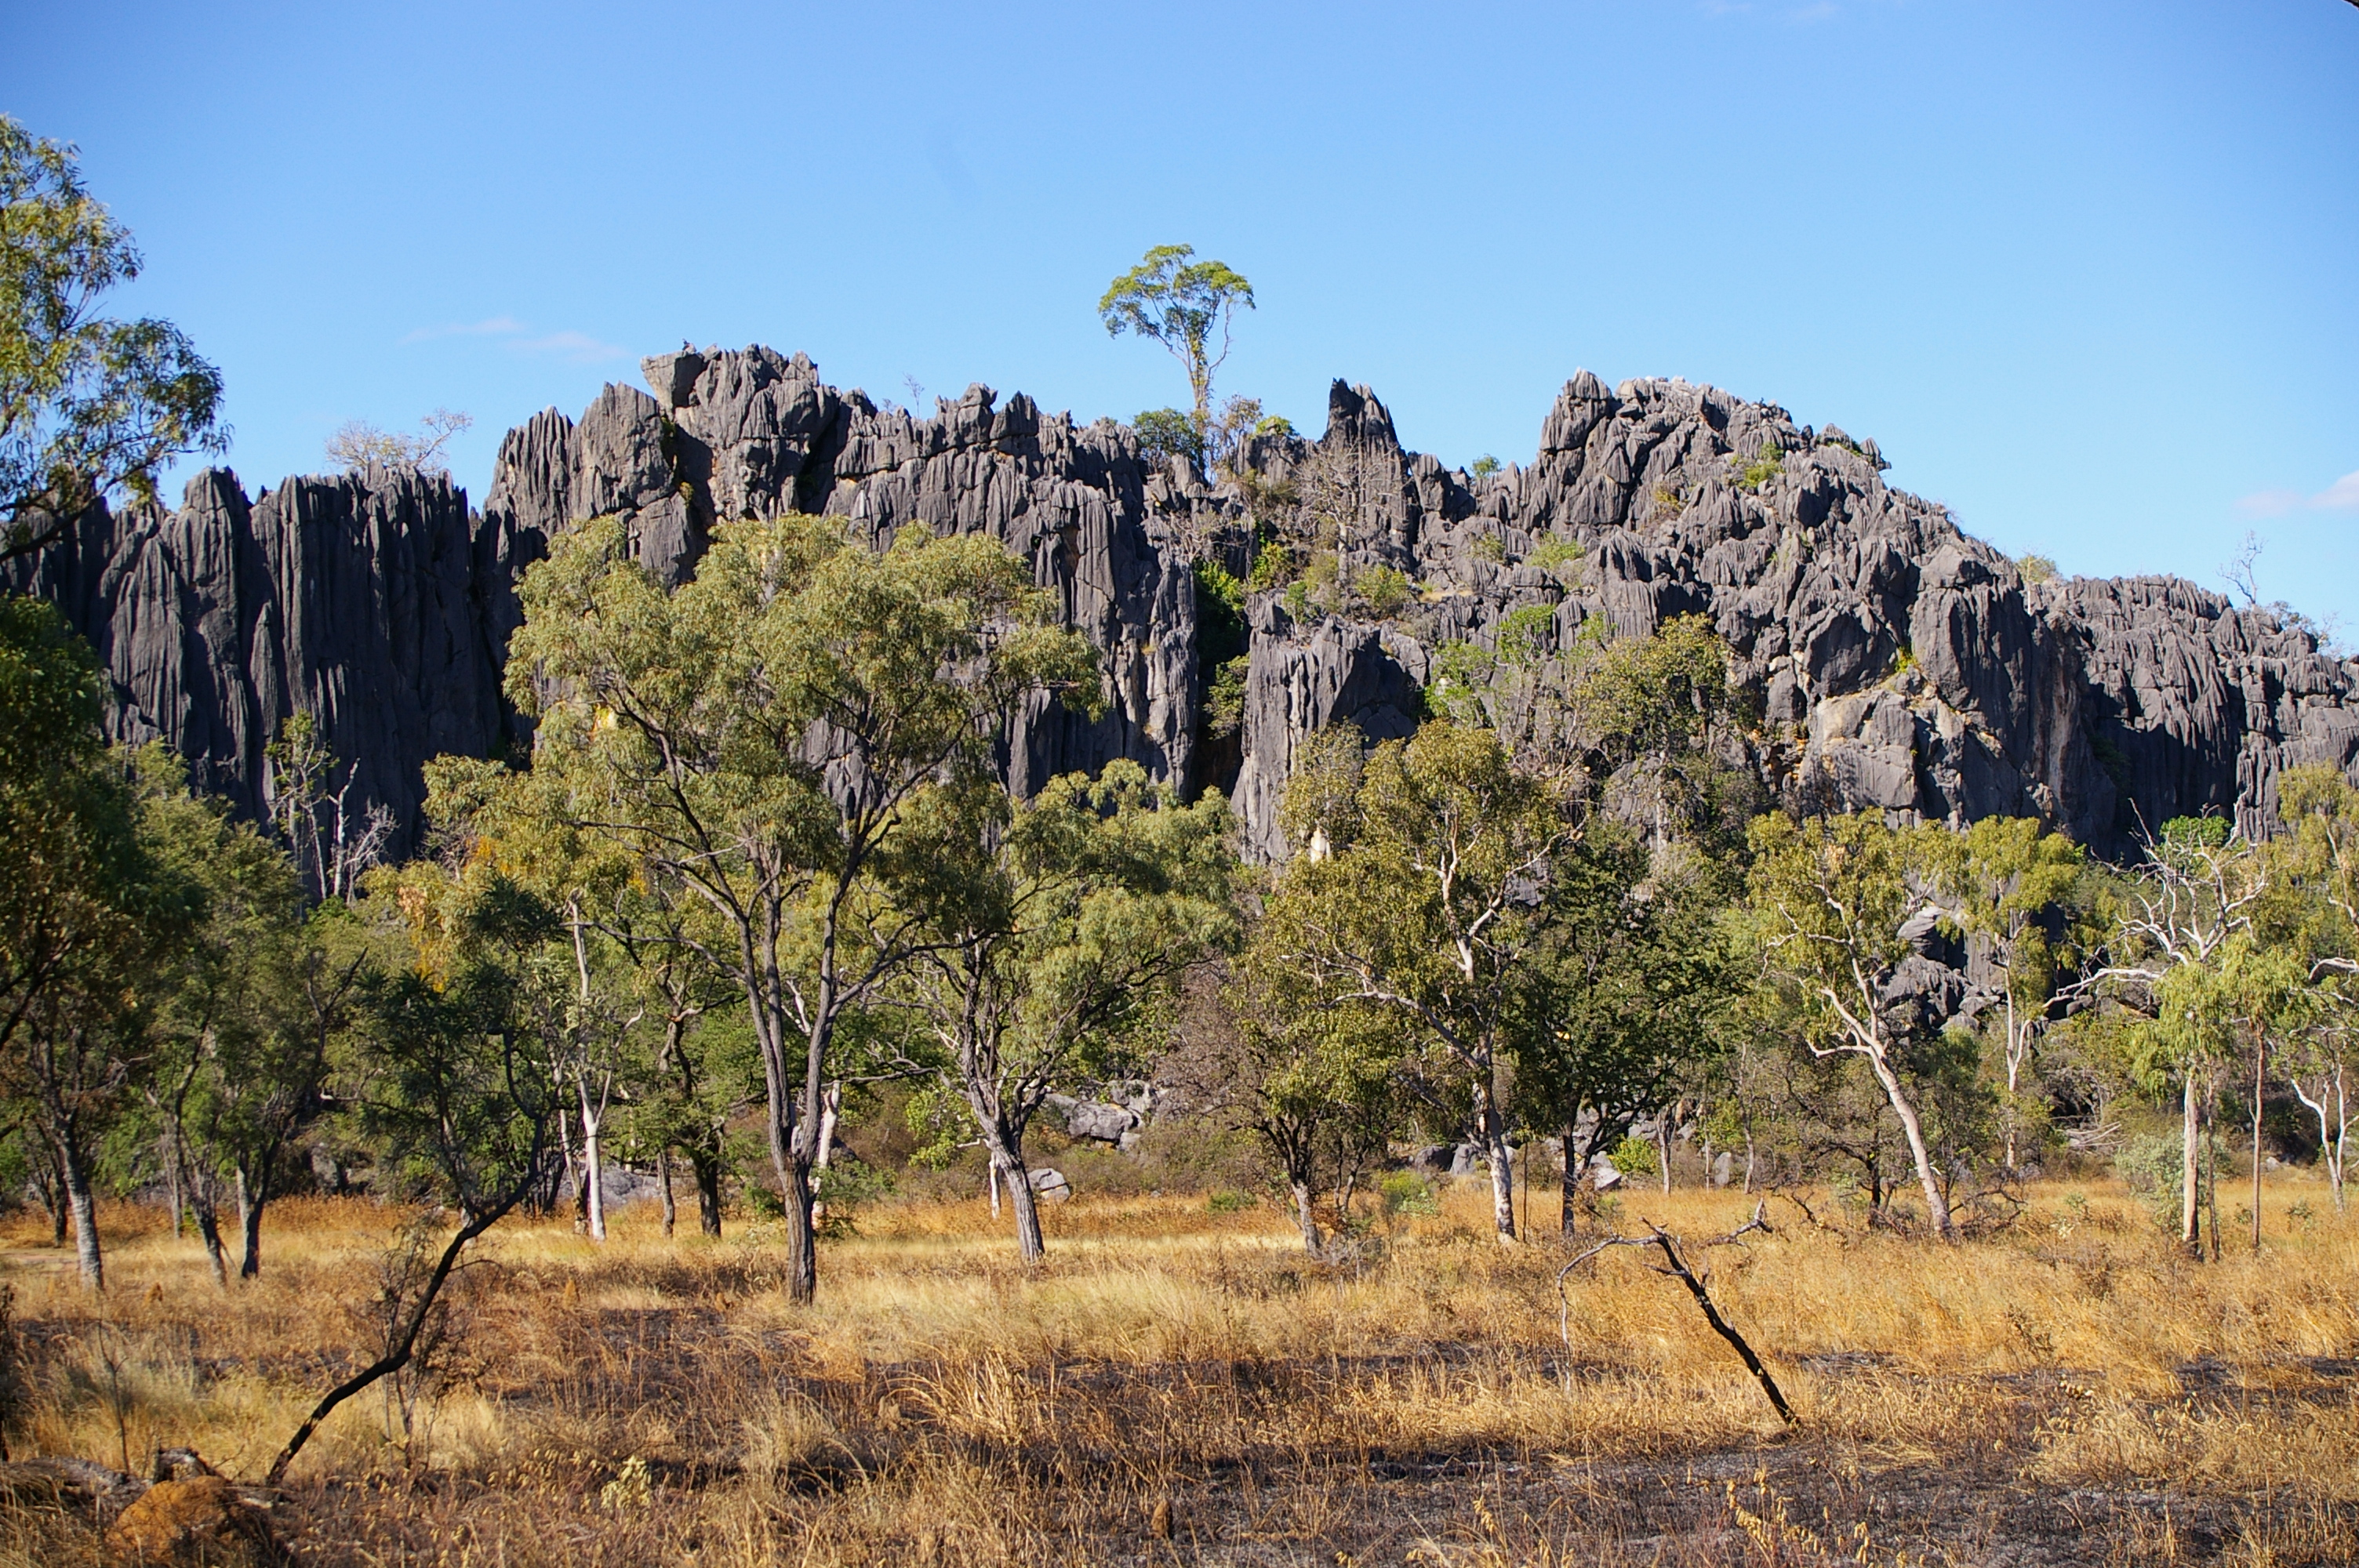 CHILLAGOE_CAVES_260706.JPG